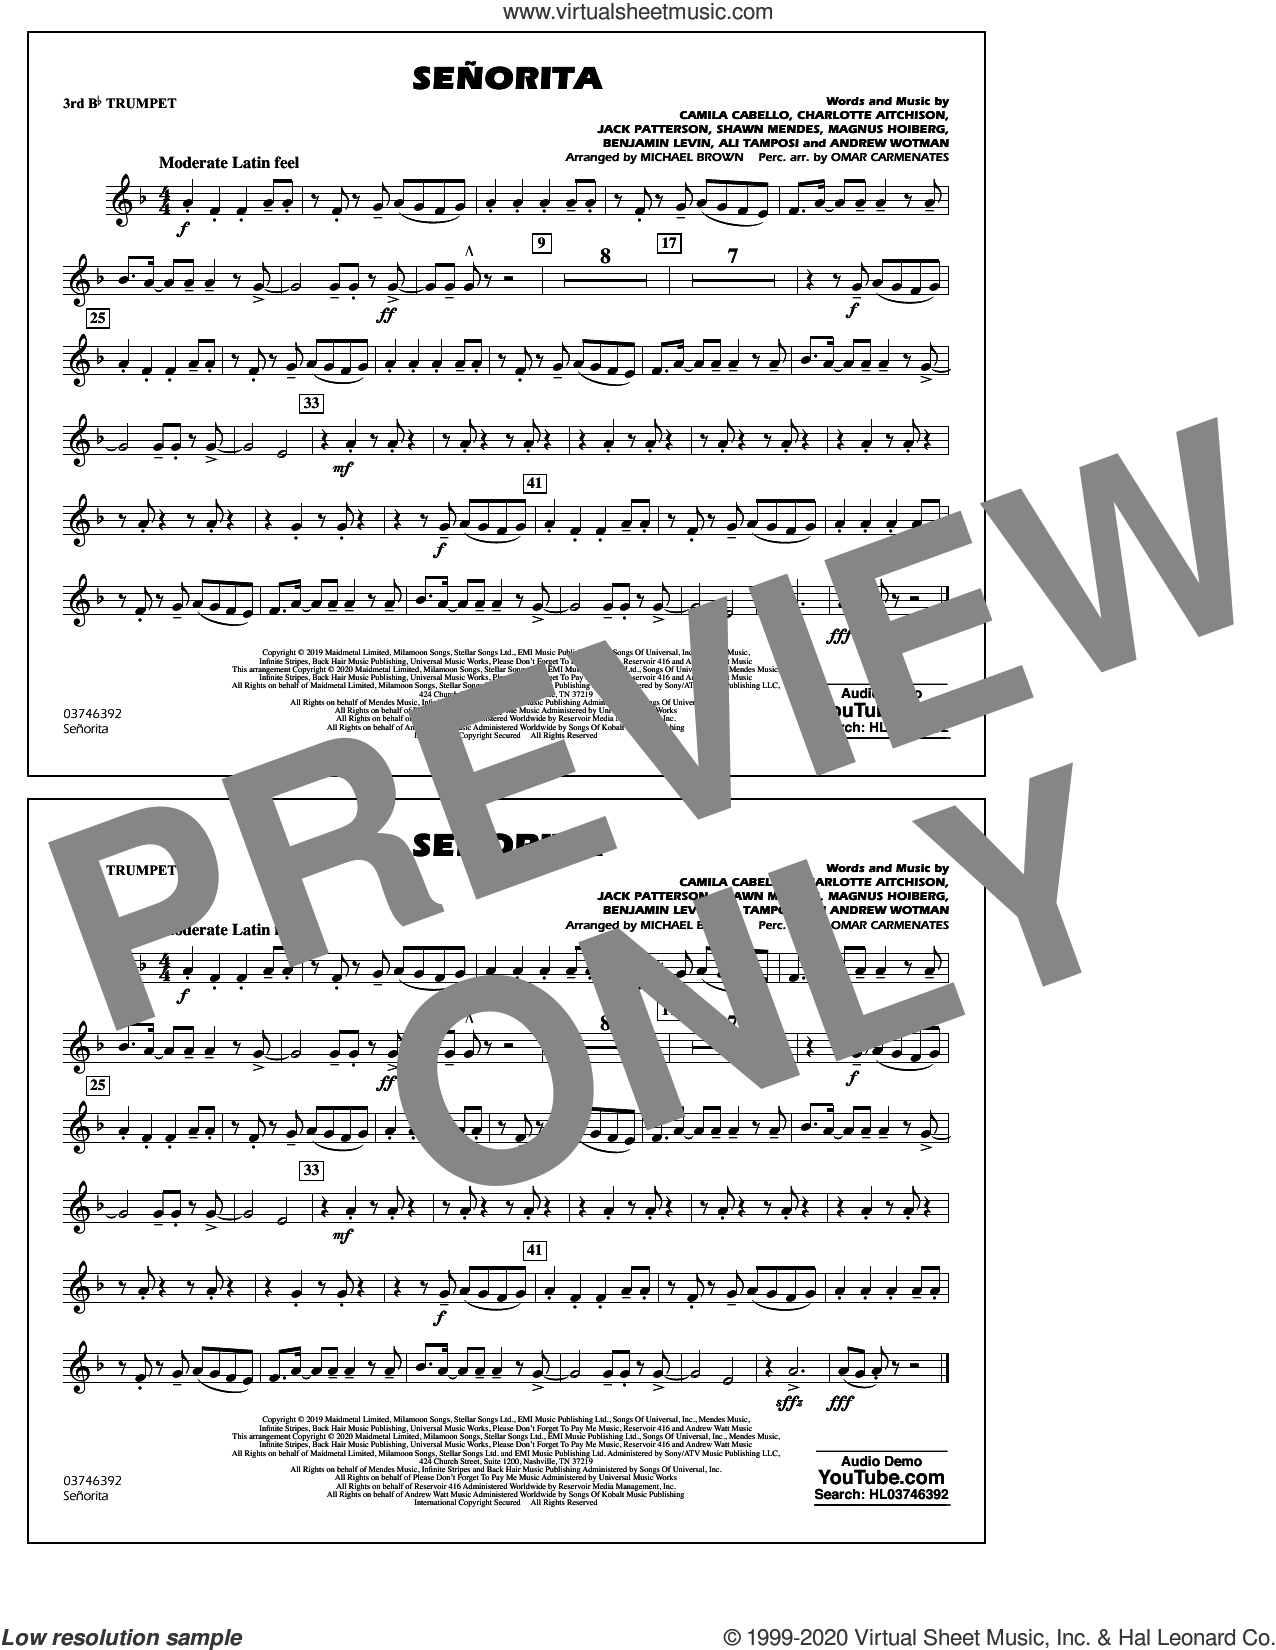 Señorita (arr. Carmenates and Brown) sheet music for marching band (3rd Bb trumpet) by Shawn Mendes & Camila Cabello, Michael Brown, Omar Carmenates, Ali Tamposi, Andrew Wotman, Benjamin Levin, Camila Cabello, Charlotte Aitchison, Jack Patterson, Magnus Hoiberg and Shawn Mendes, intermediate skill level